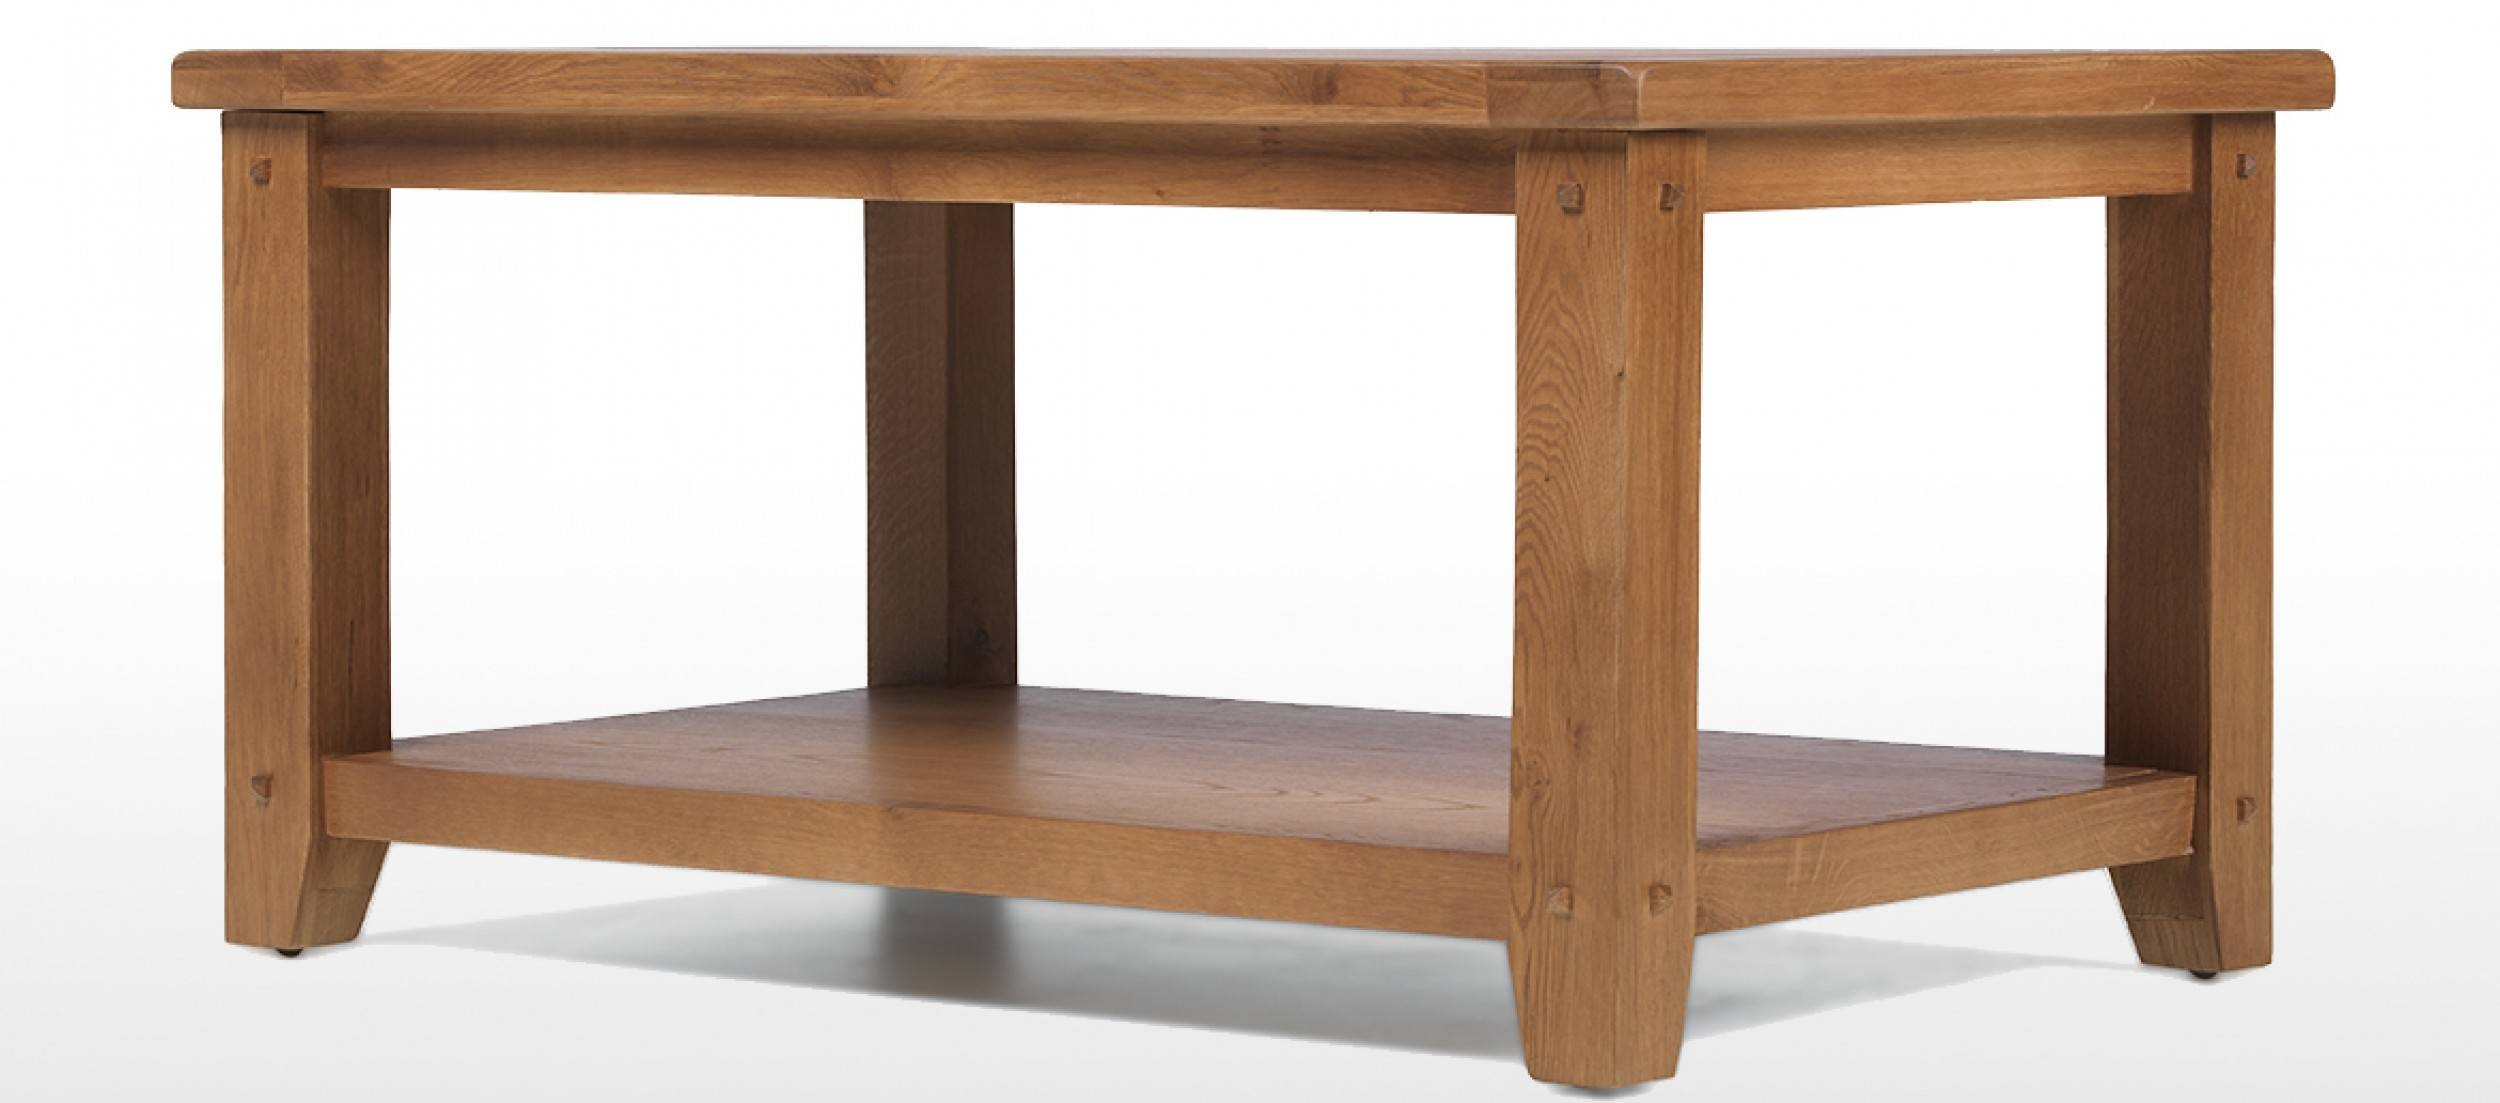 Rustic Oak Open Coffee Table | Quercus Living pertaining to Large Oak Coffee Tables (Image 12 of 15)